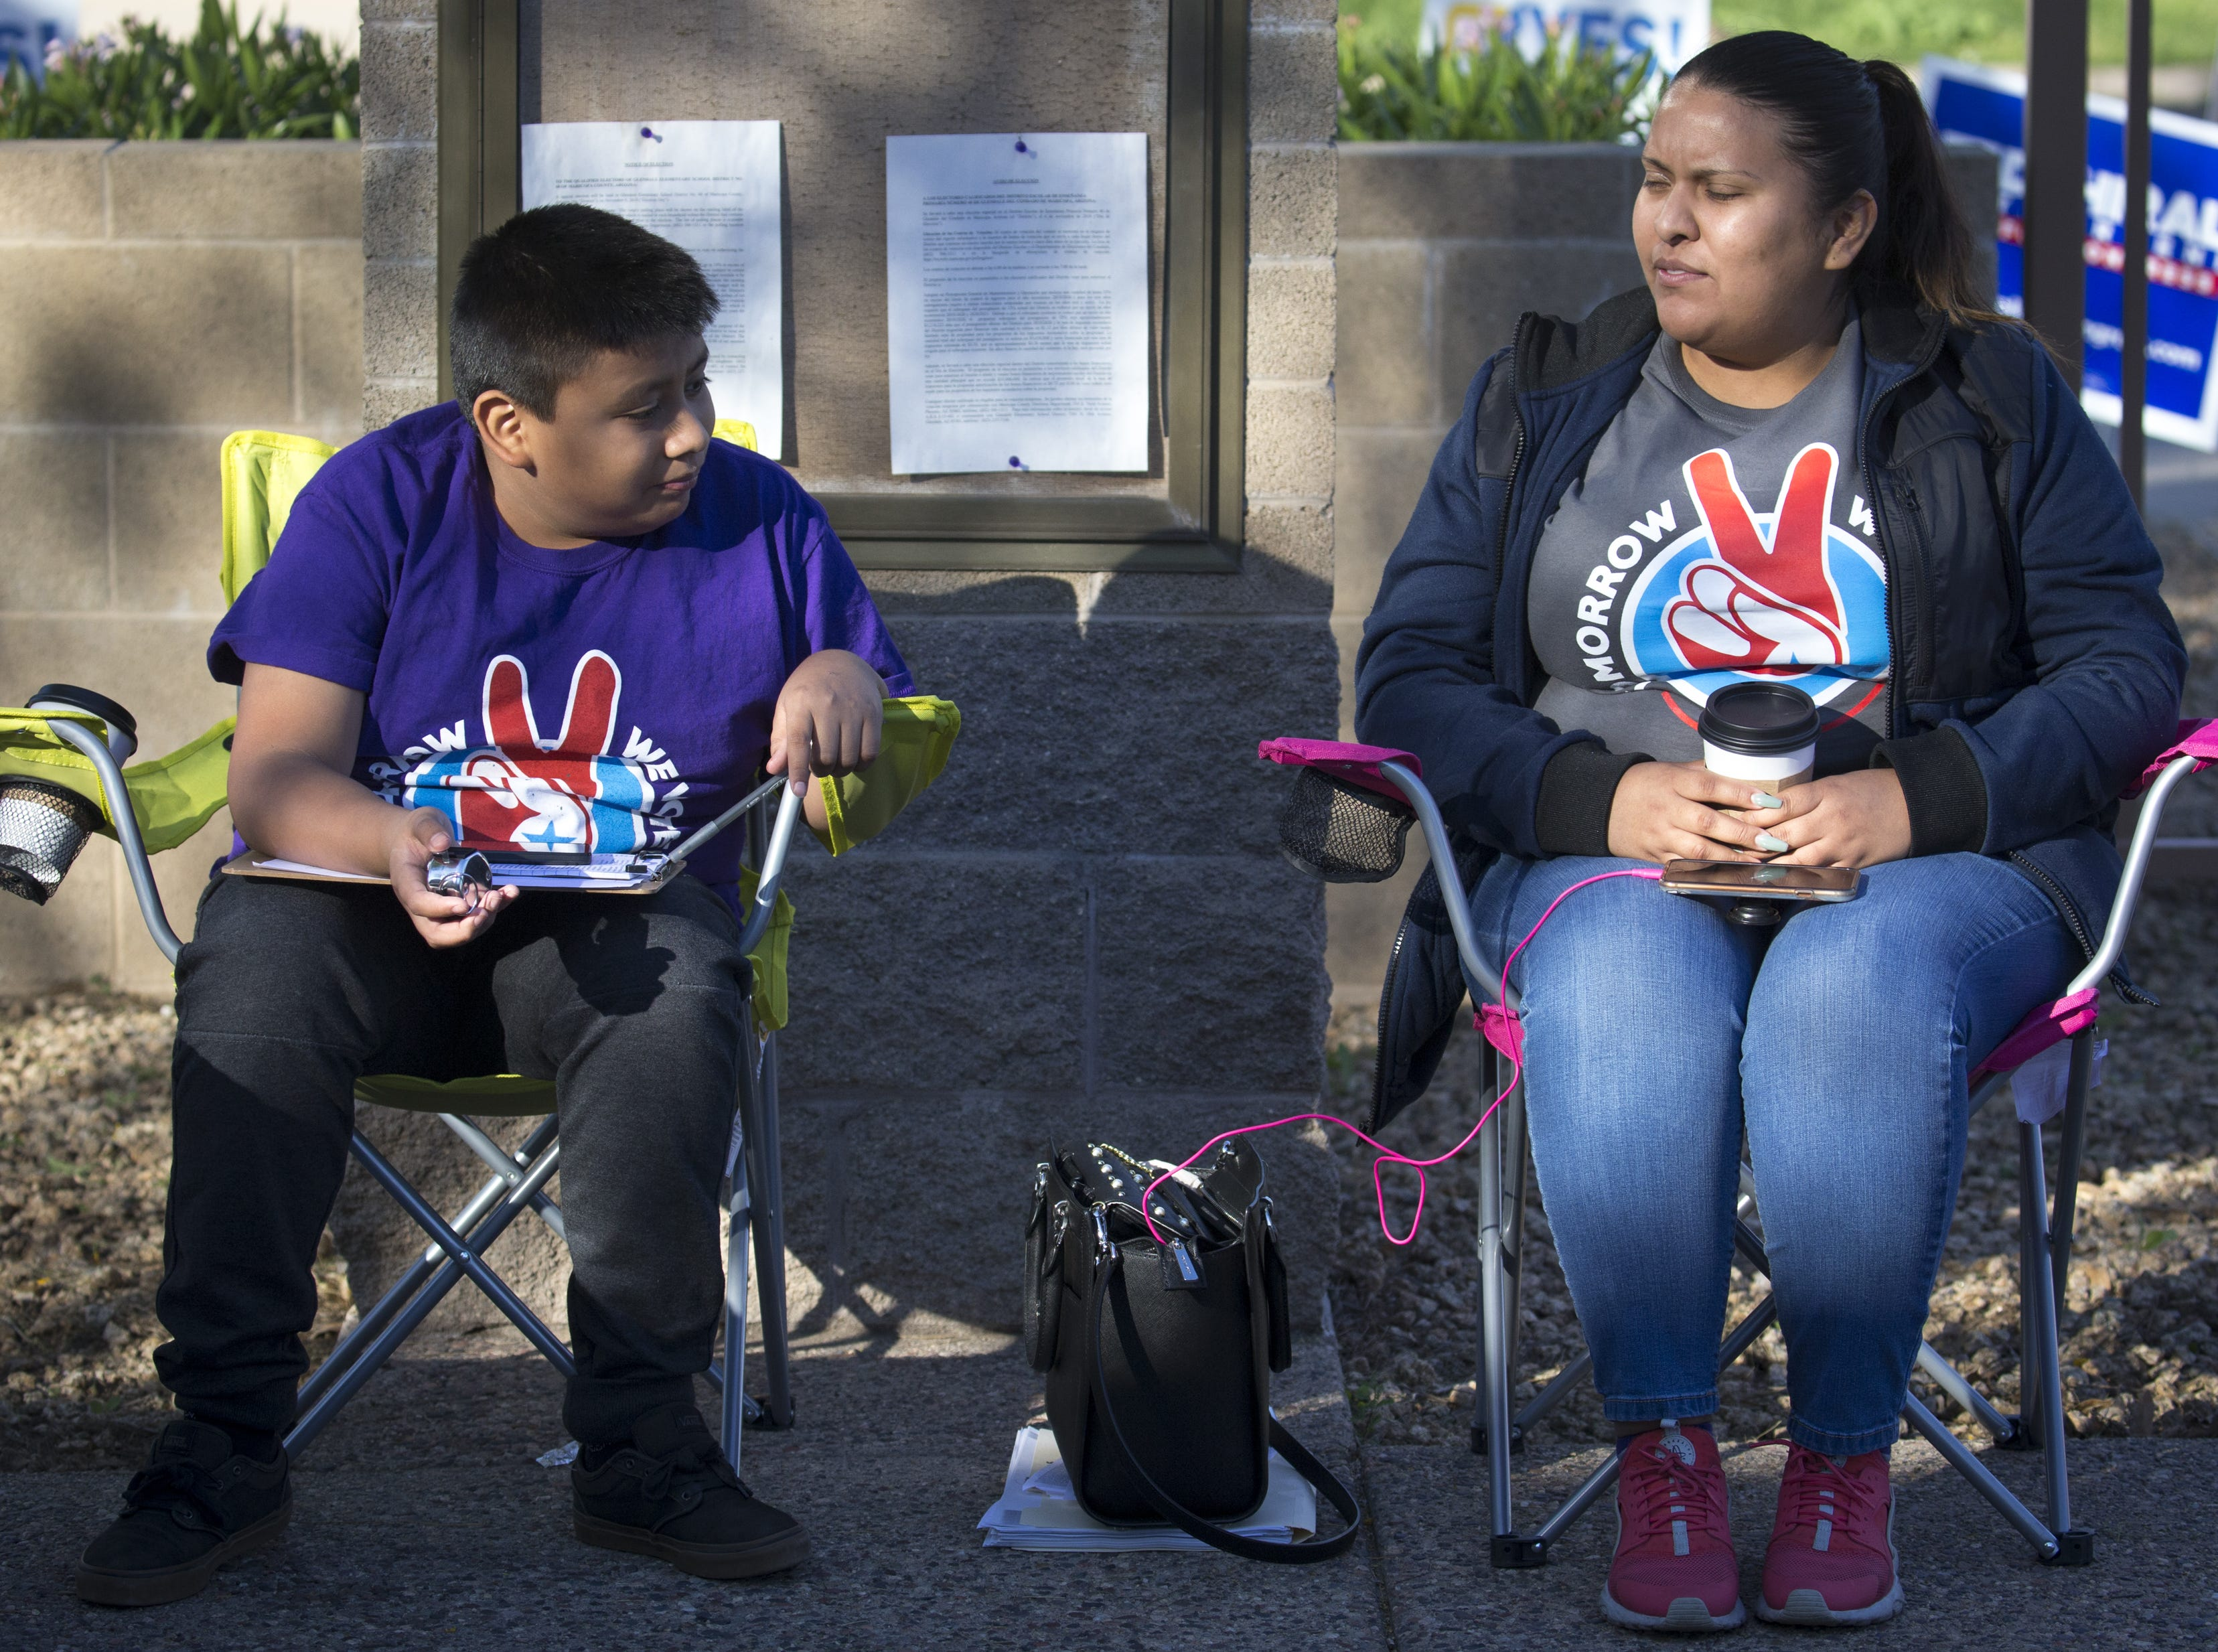 Jonathan Maldonado (left) and his sister, Yolanda Medina count voters as they arrive, Nov. 6, 2018, at Glendale Elementary School District, 7301 N. 58th Ave. in Glendale. Over 60 votes were cast at this poll before 9 a.m.